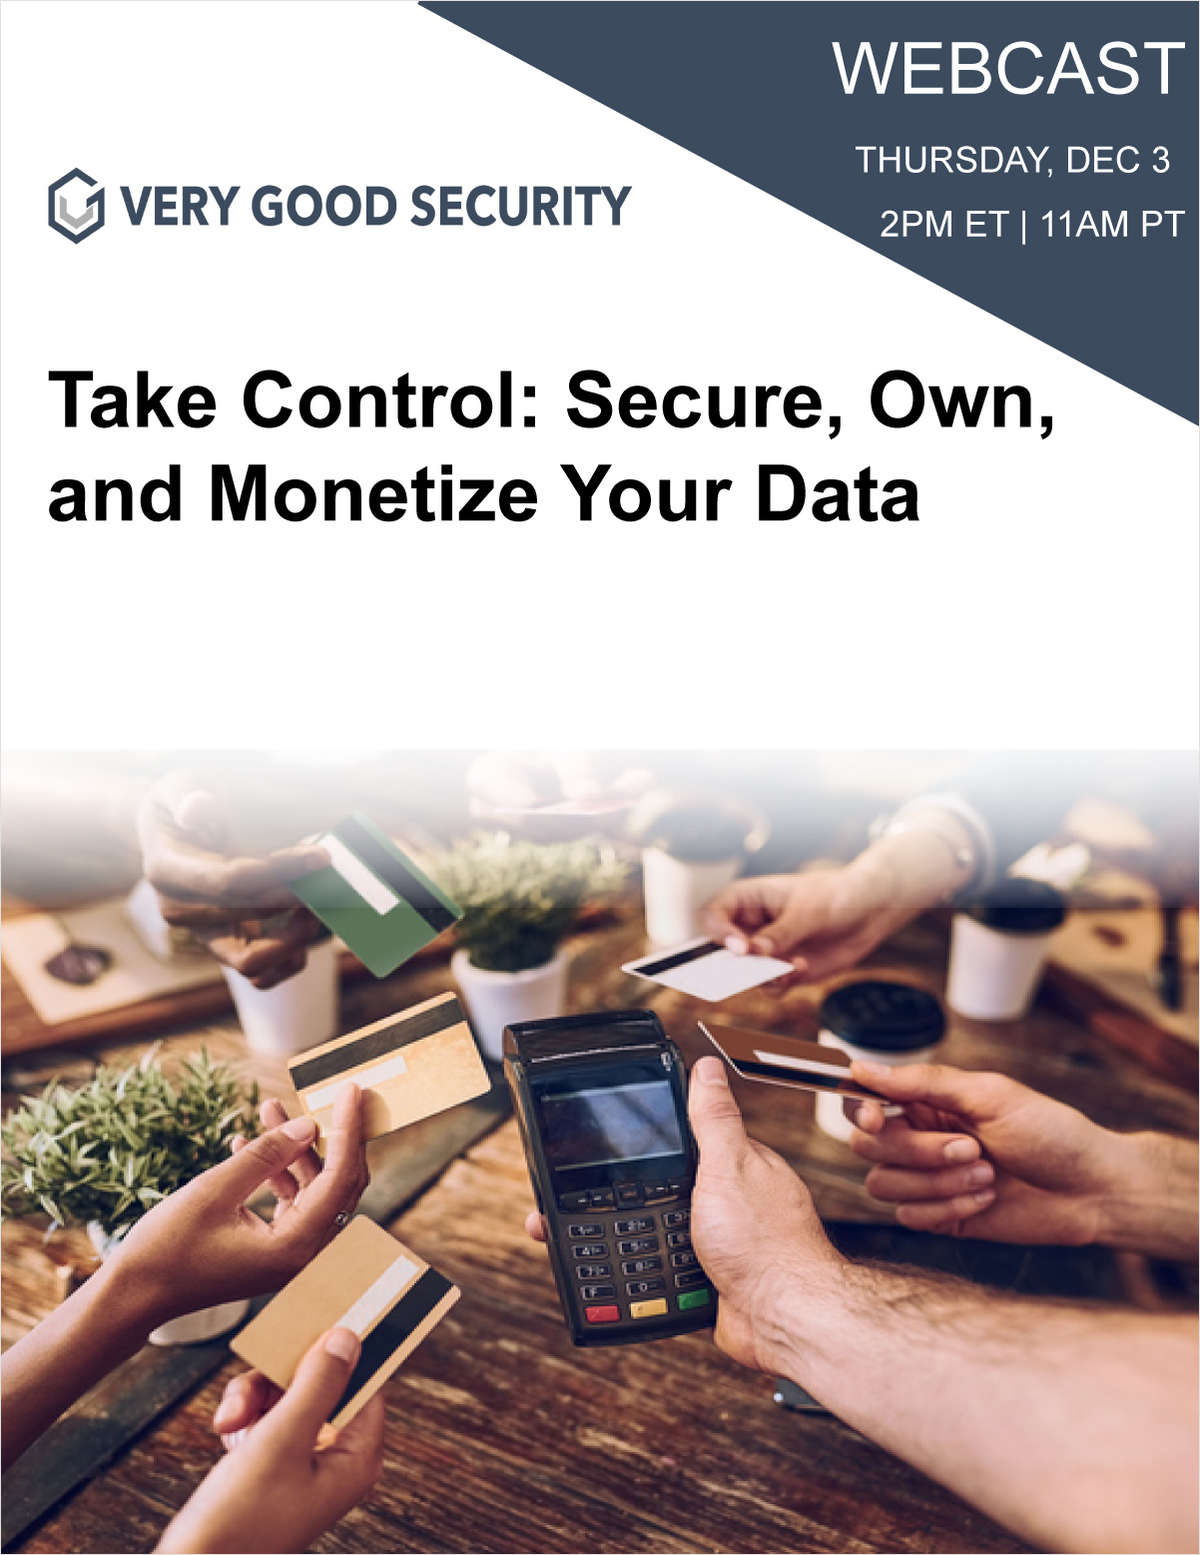 Take Control: Secure, Own, and Monetize Your Data